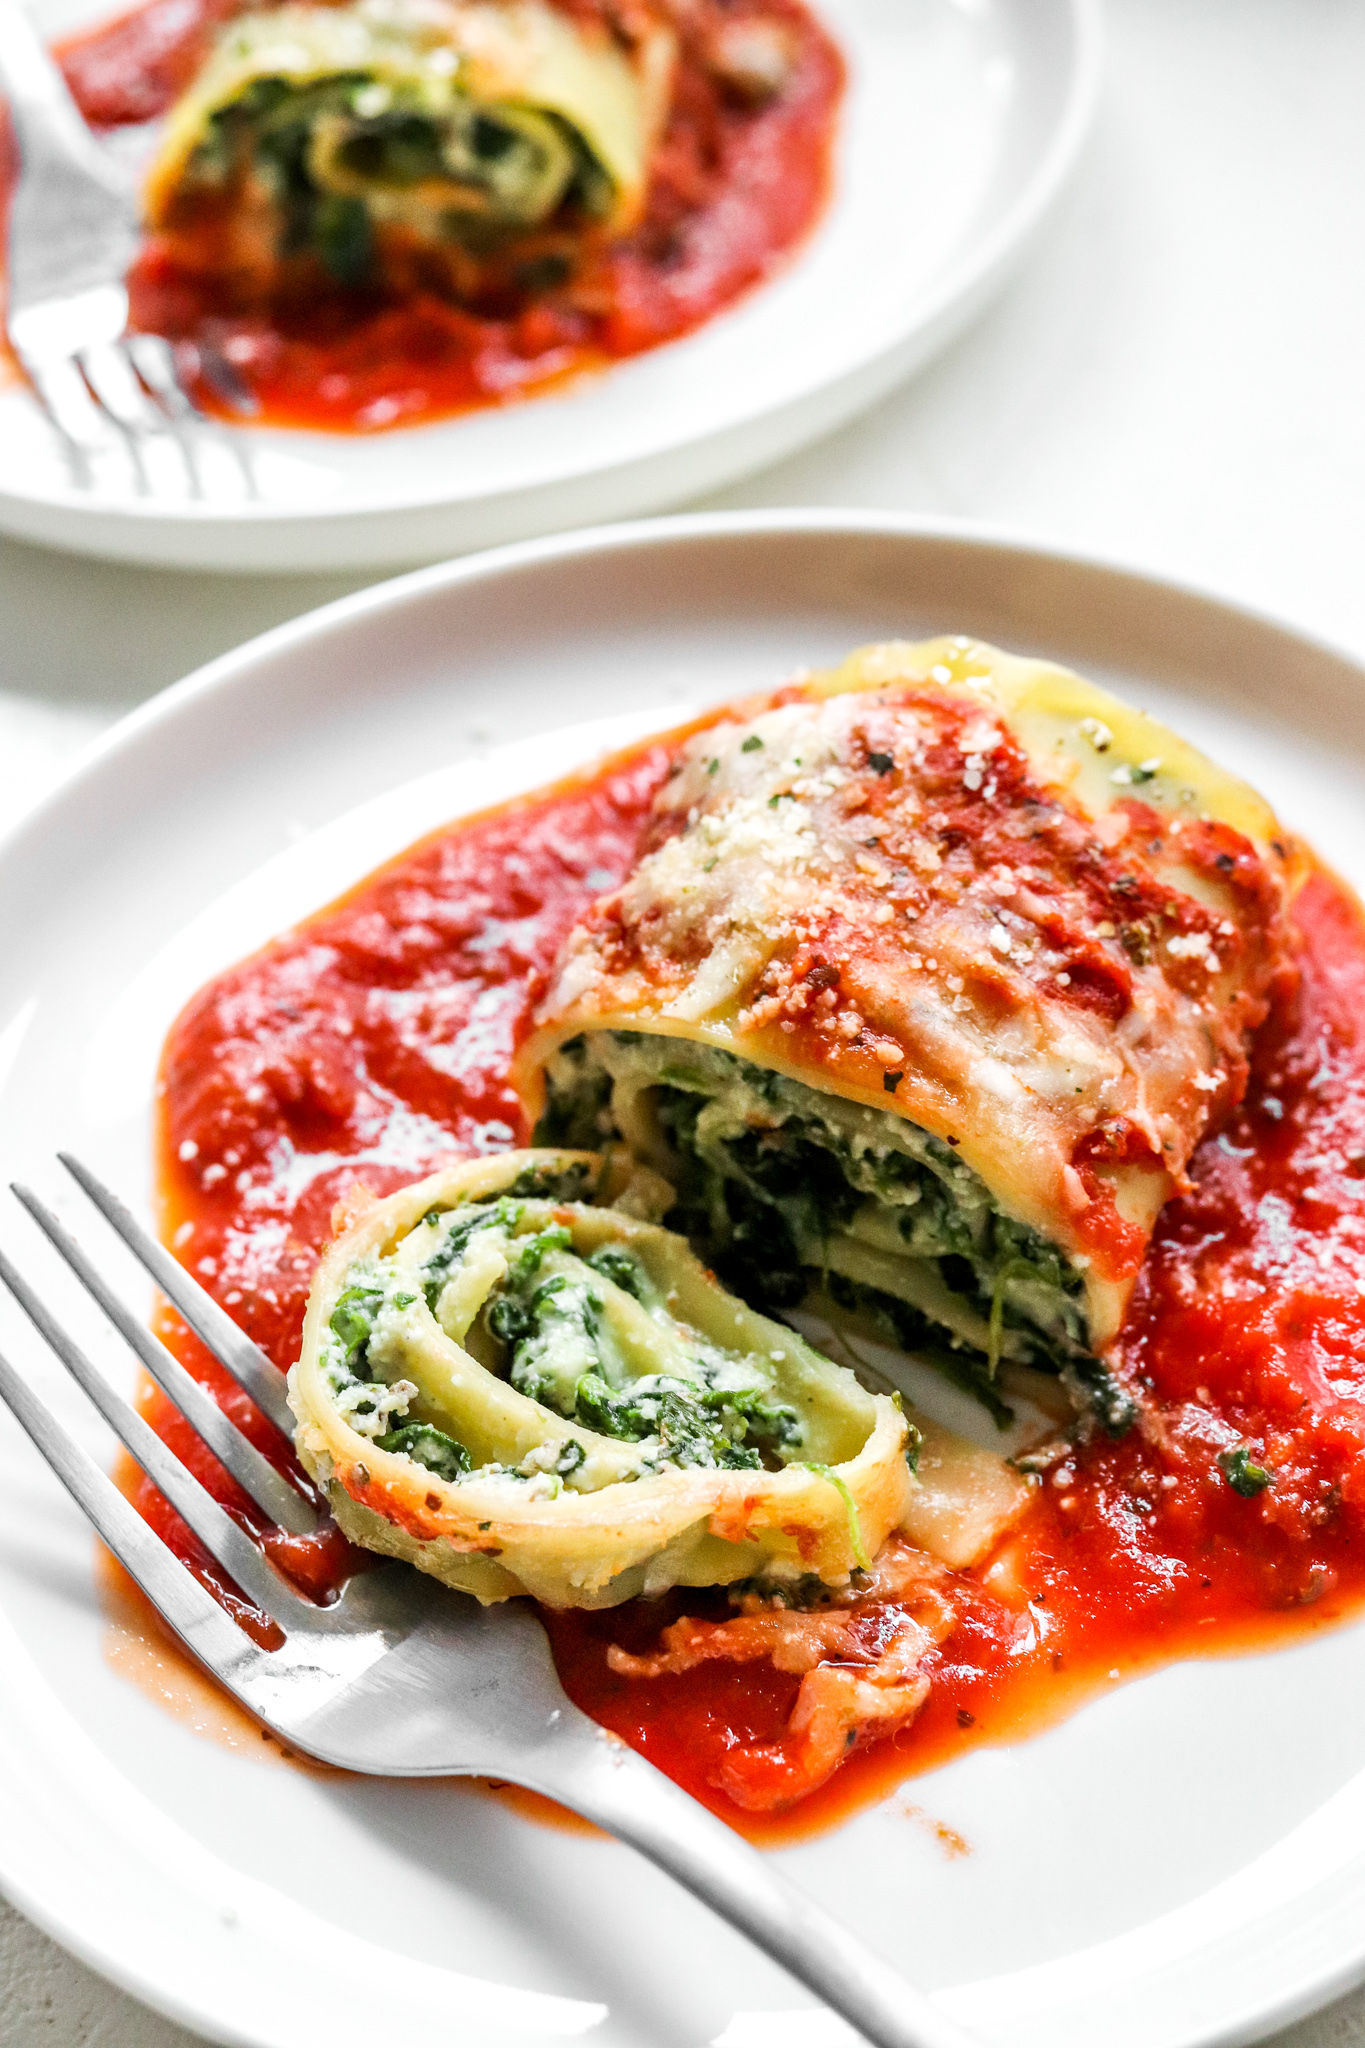 Lasagna roll filled with cheese and spinach covered in red sauce with a pice cut on a plate with a fork next to it.